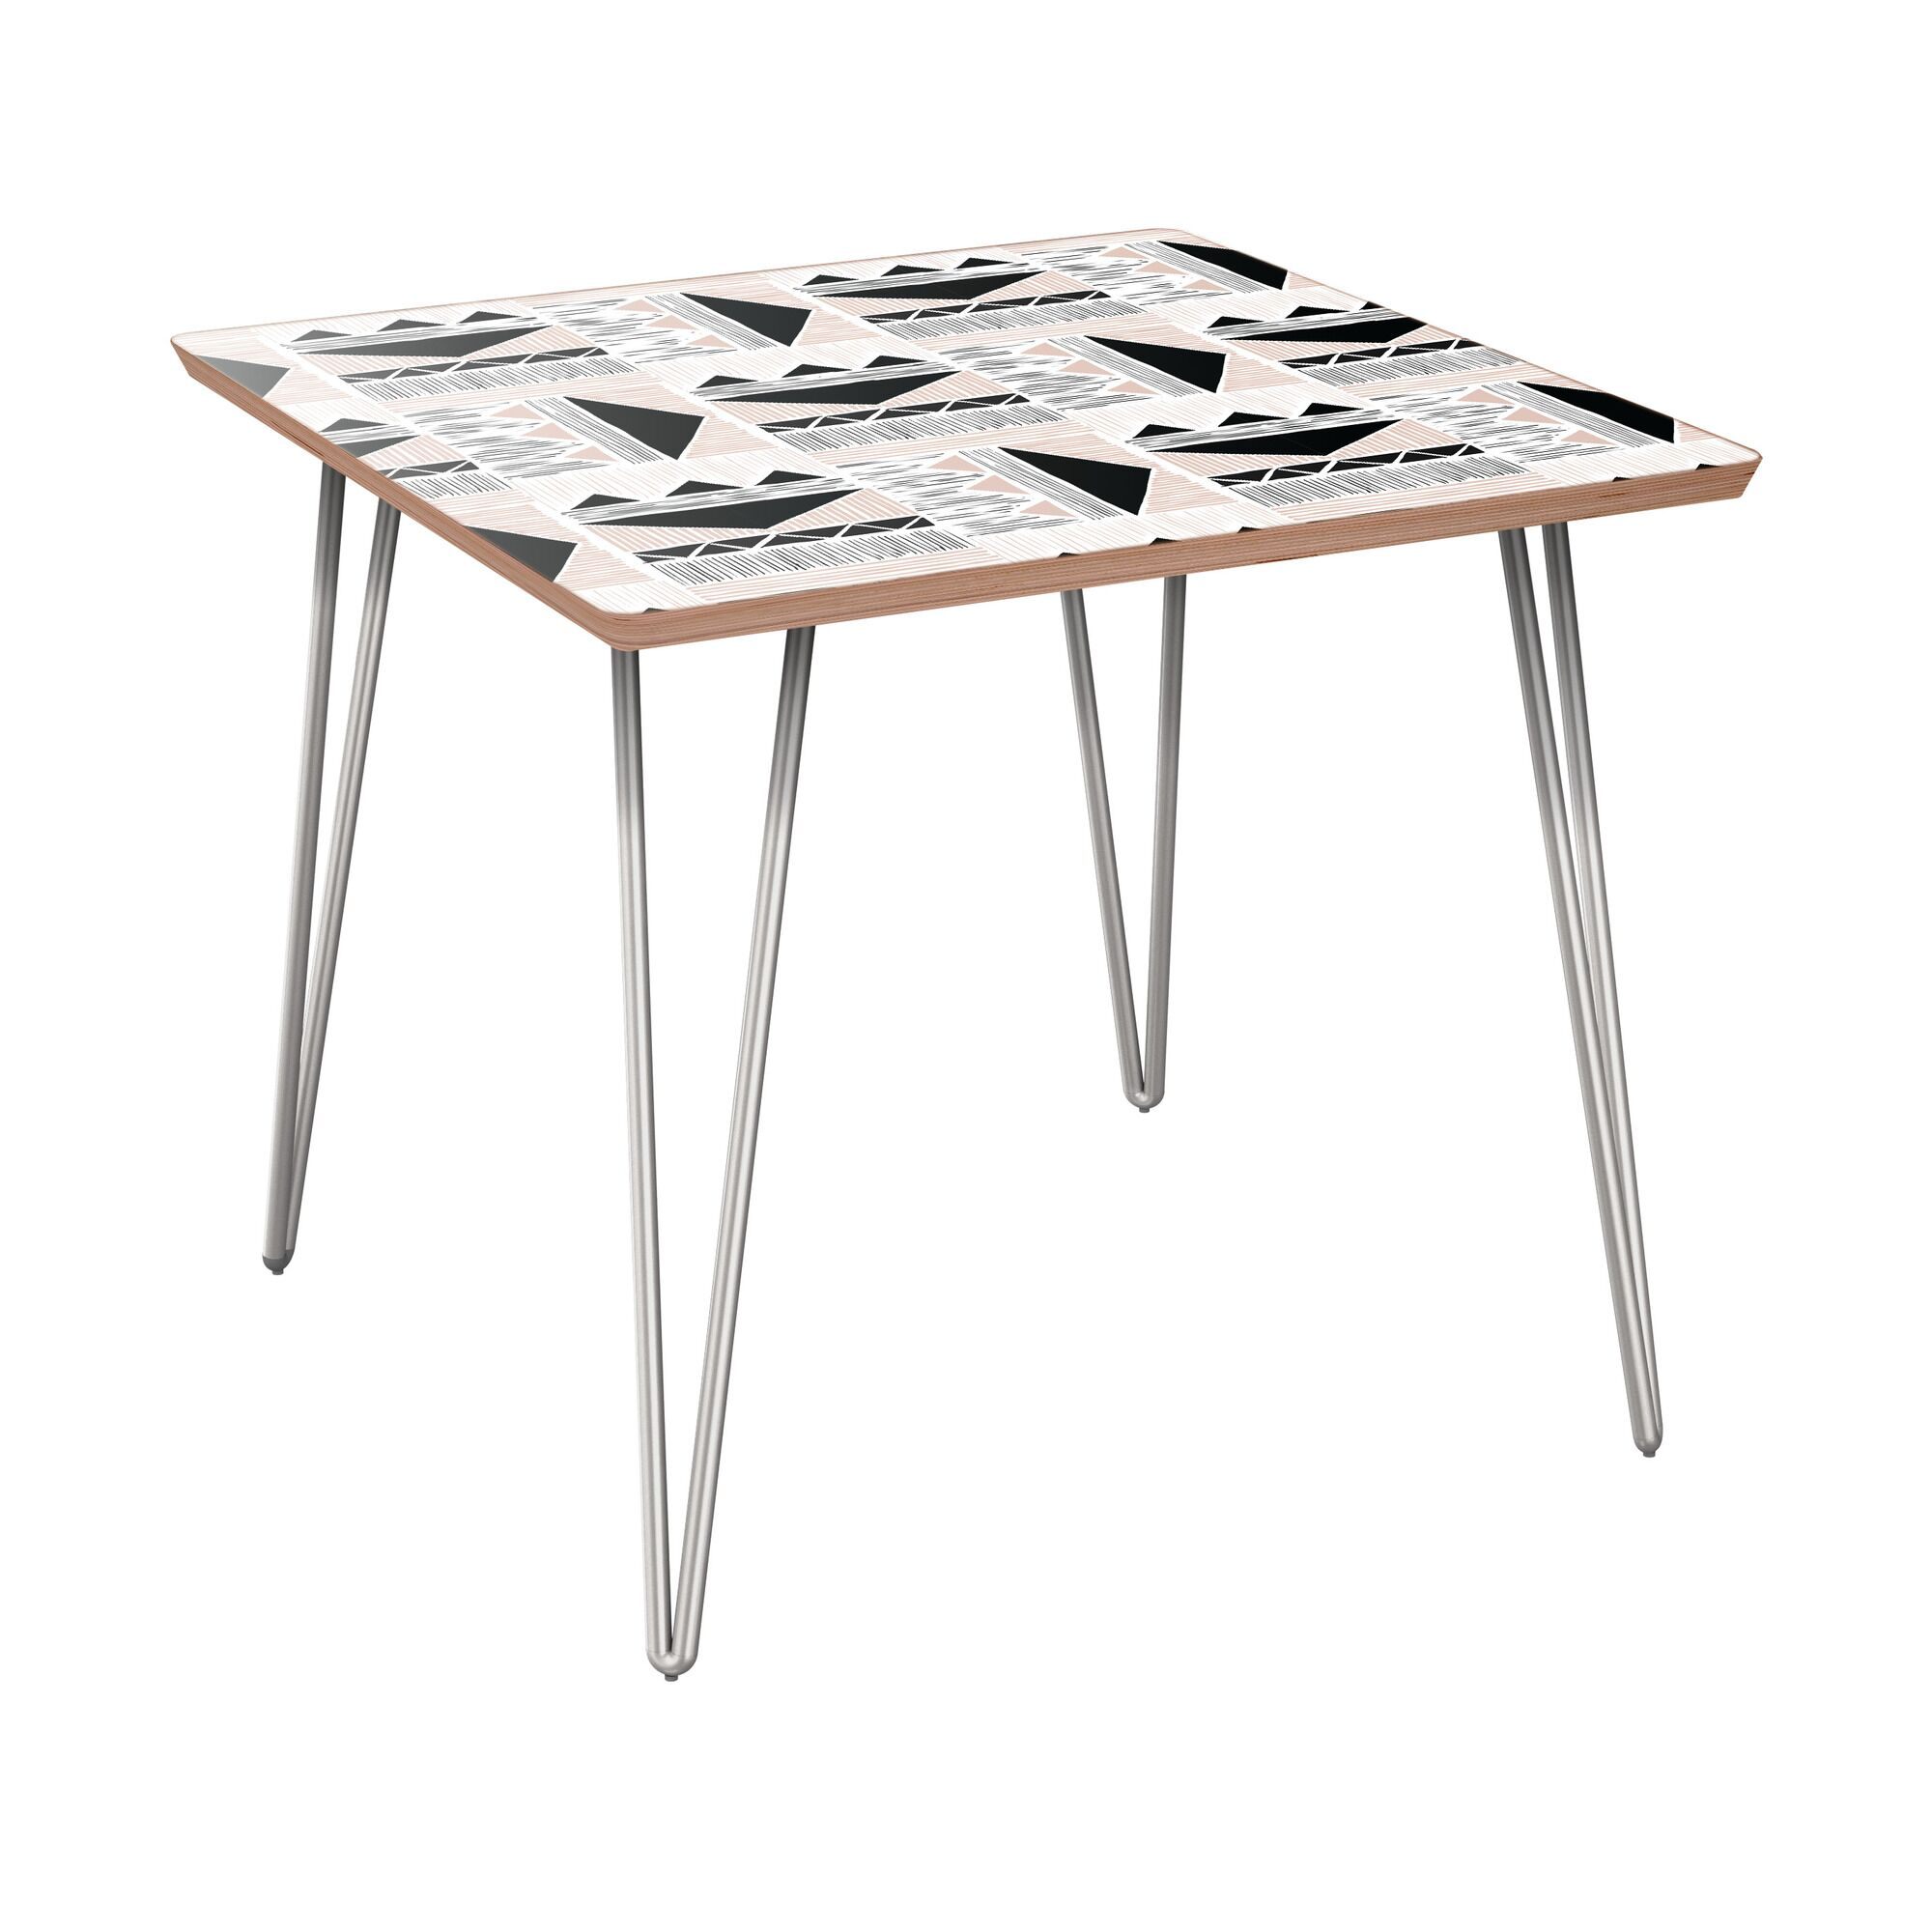 Houpt End Table Table Base Color: Chrome, Table Top Color: Walnut